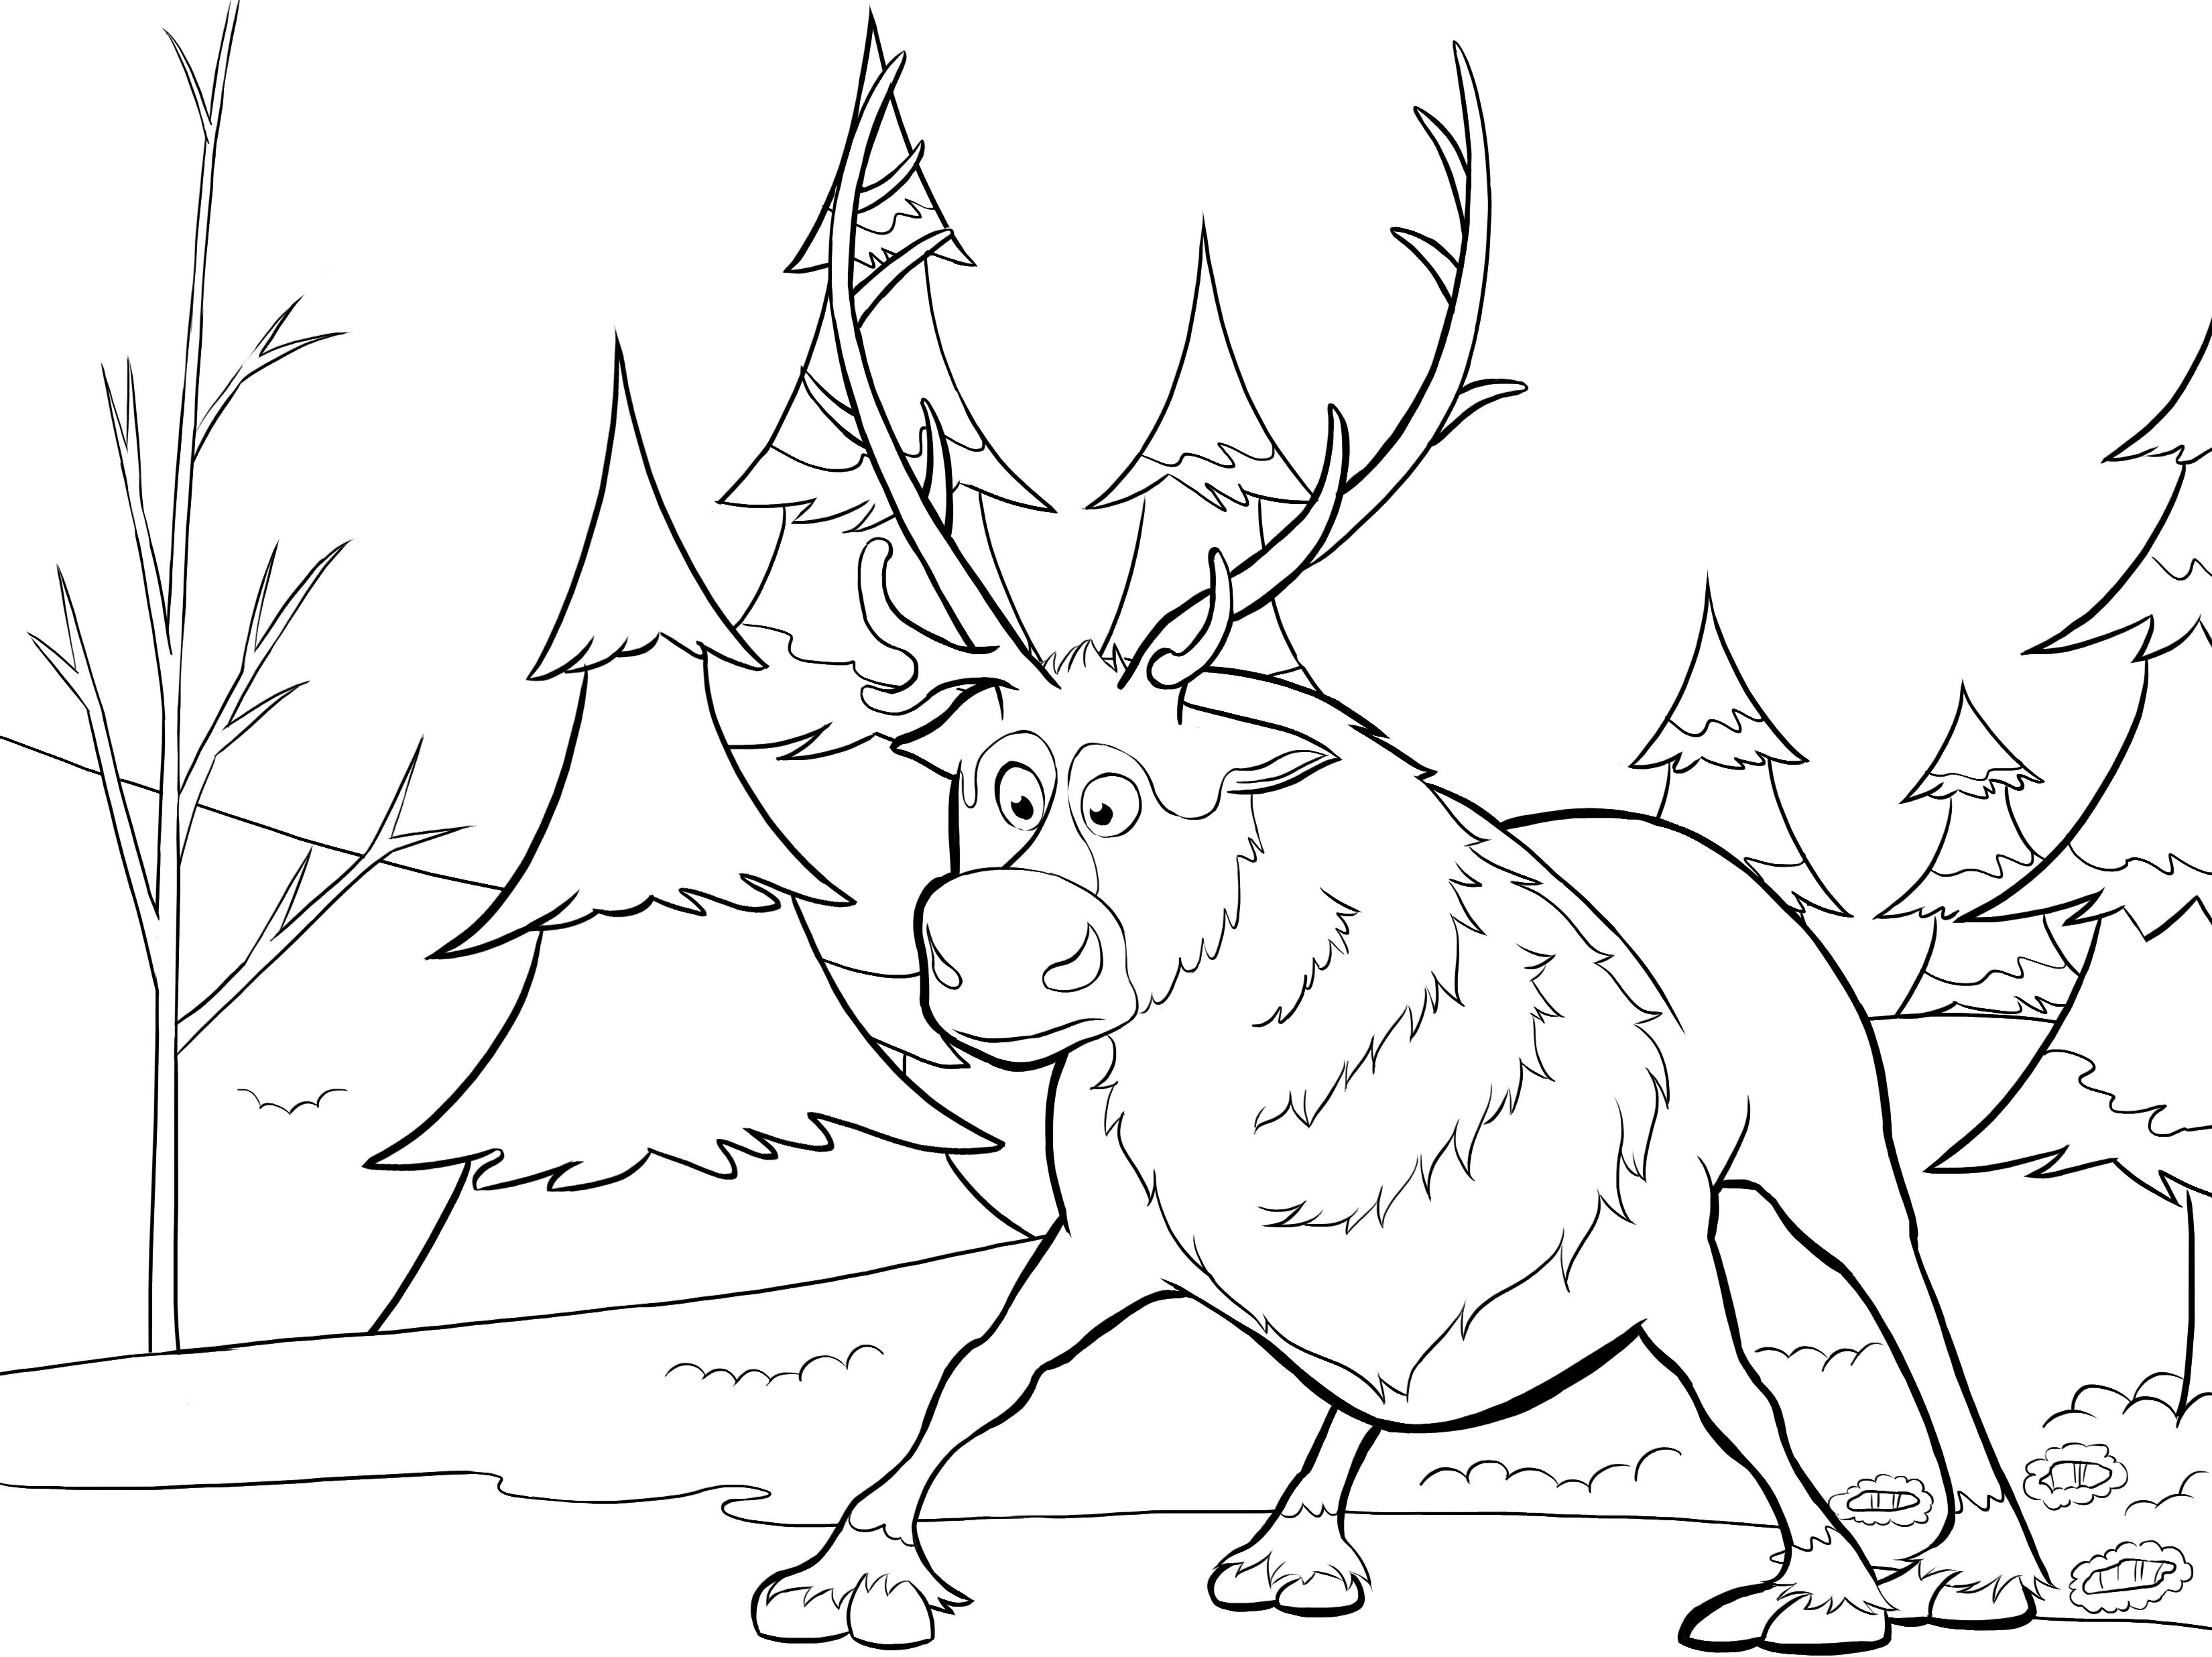 3300x2472 Disney Frozen Sven Coloring Pages Printable Coloring For Kids